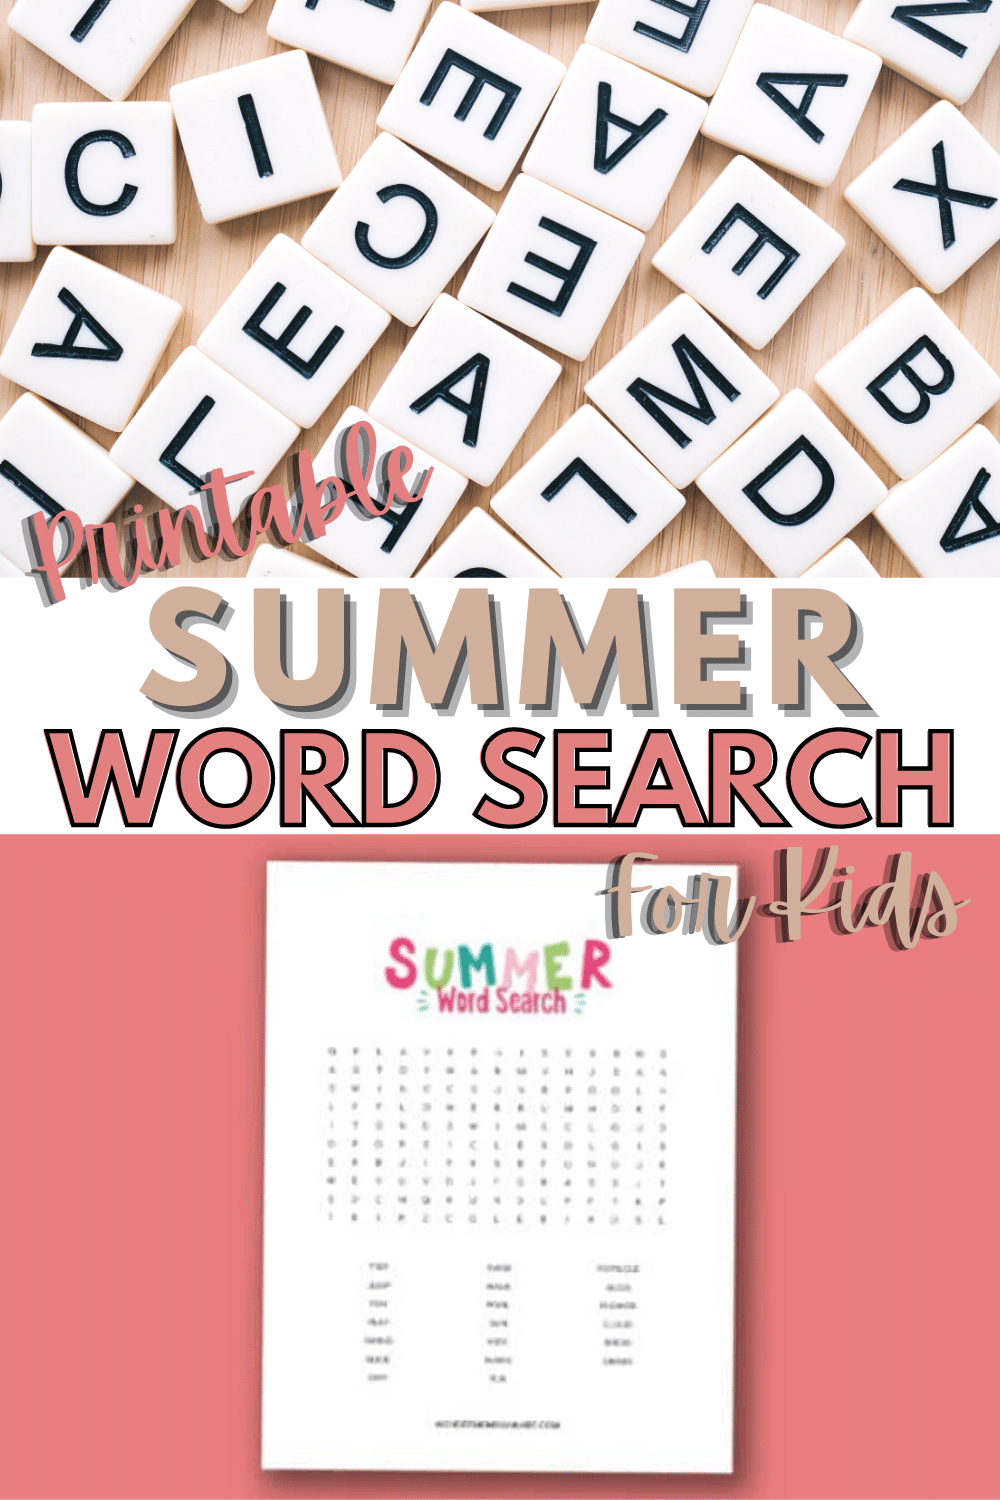 This printable summer word search for kids is summer-themed, fun and educational. A great activity for kids to keep them busy on a hot summer day. #wordsearch #printables #activitiesforkids #summer via @wondermomwannab